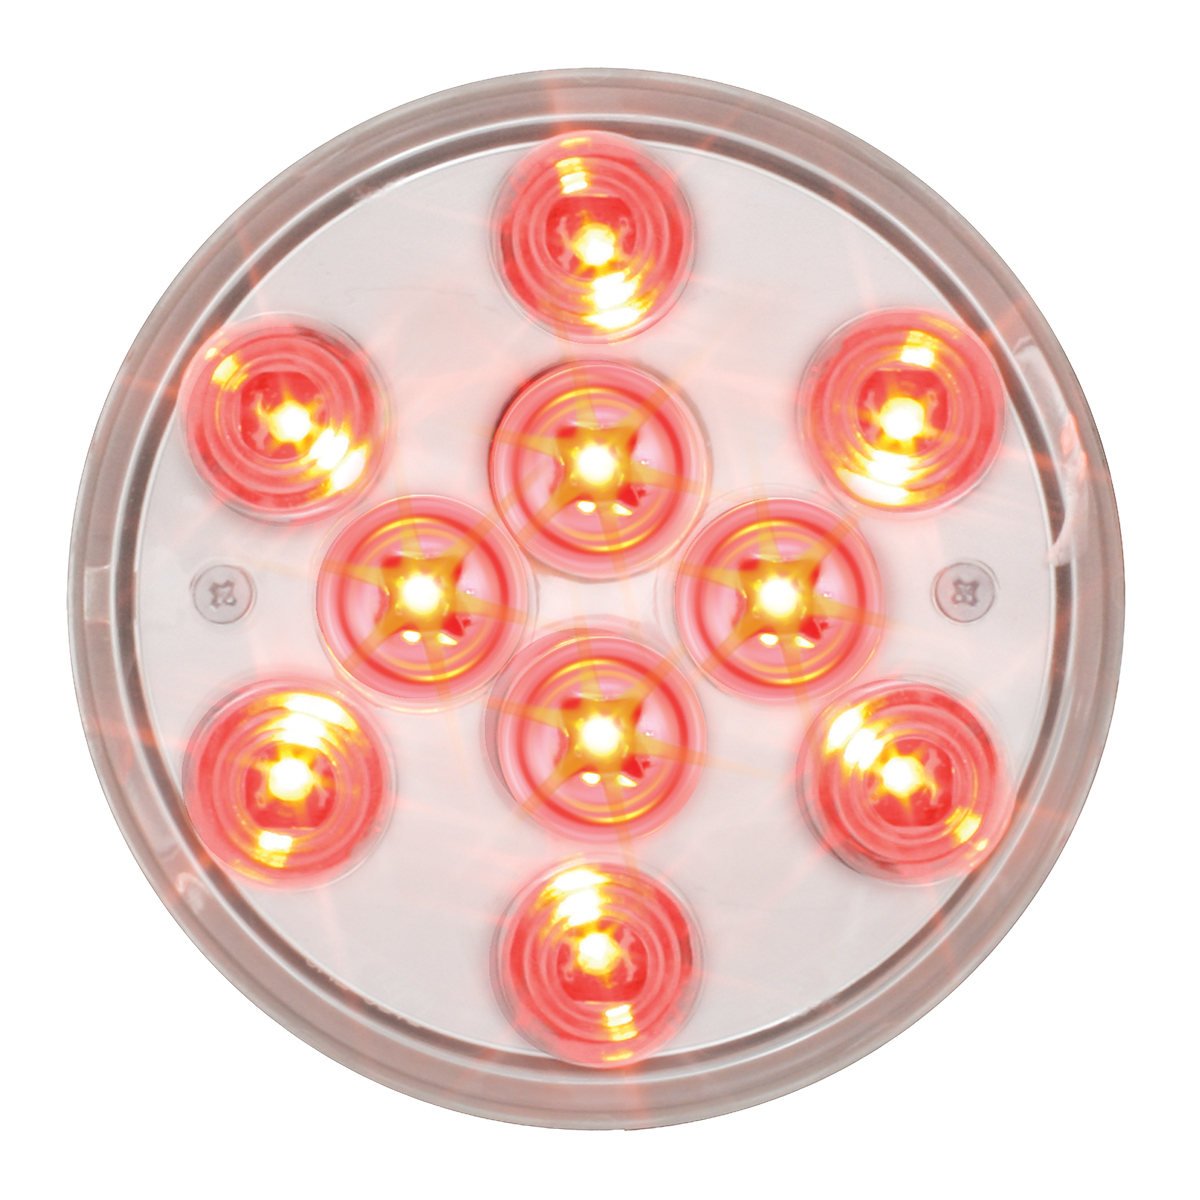 "76843 4"" Mega 10 Plus LED Light in Red/Clear"